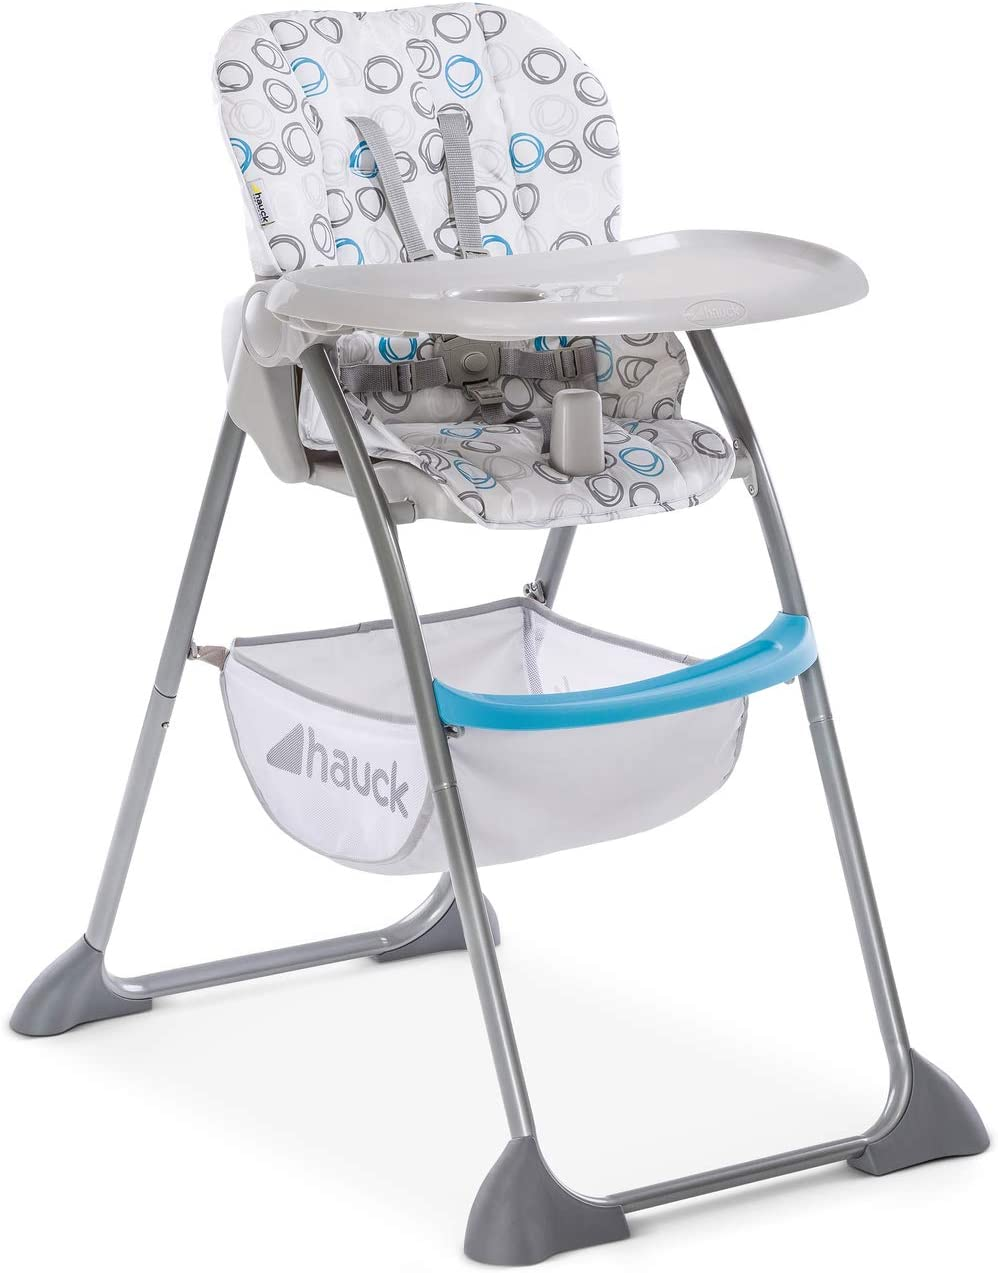 Hauck Sit'n Fold Adjustable Highchair From 6 Months, Removable Depth Adjustable Tray, Adjustable Backrest, Large Basket, Folding High Chair for